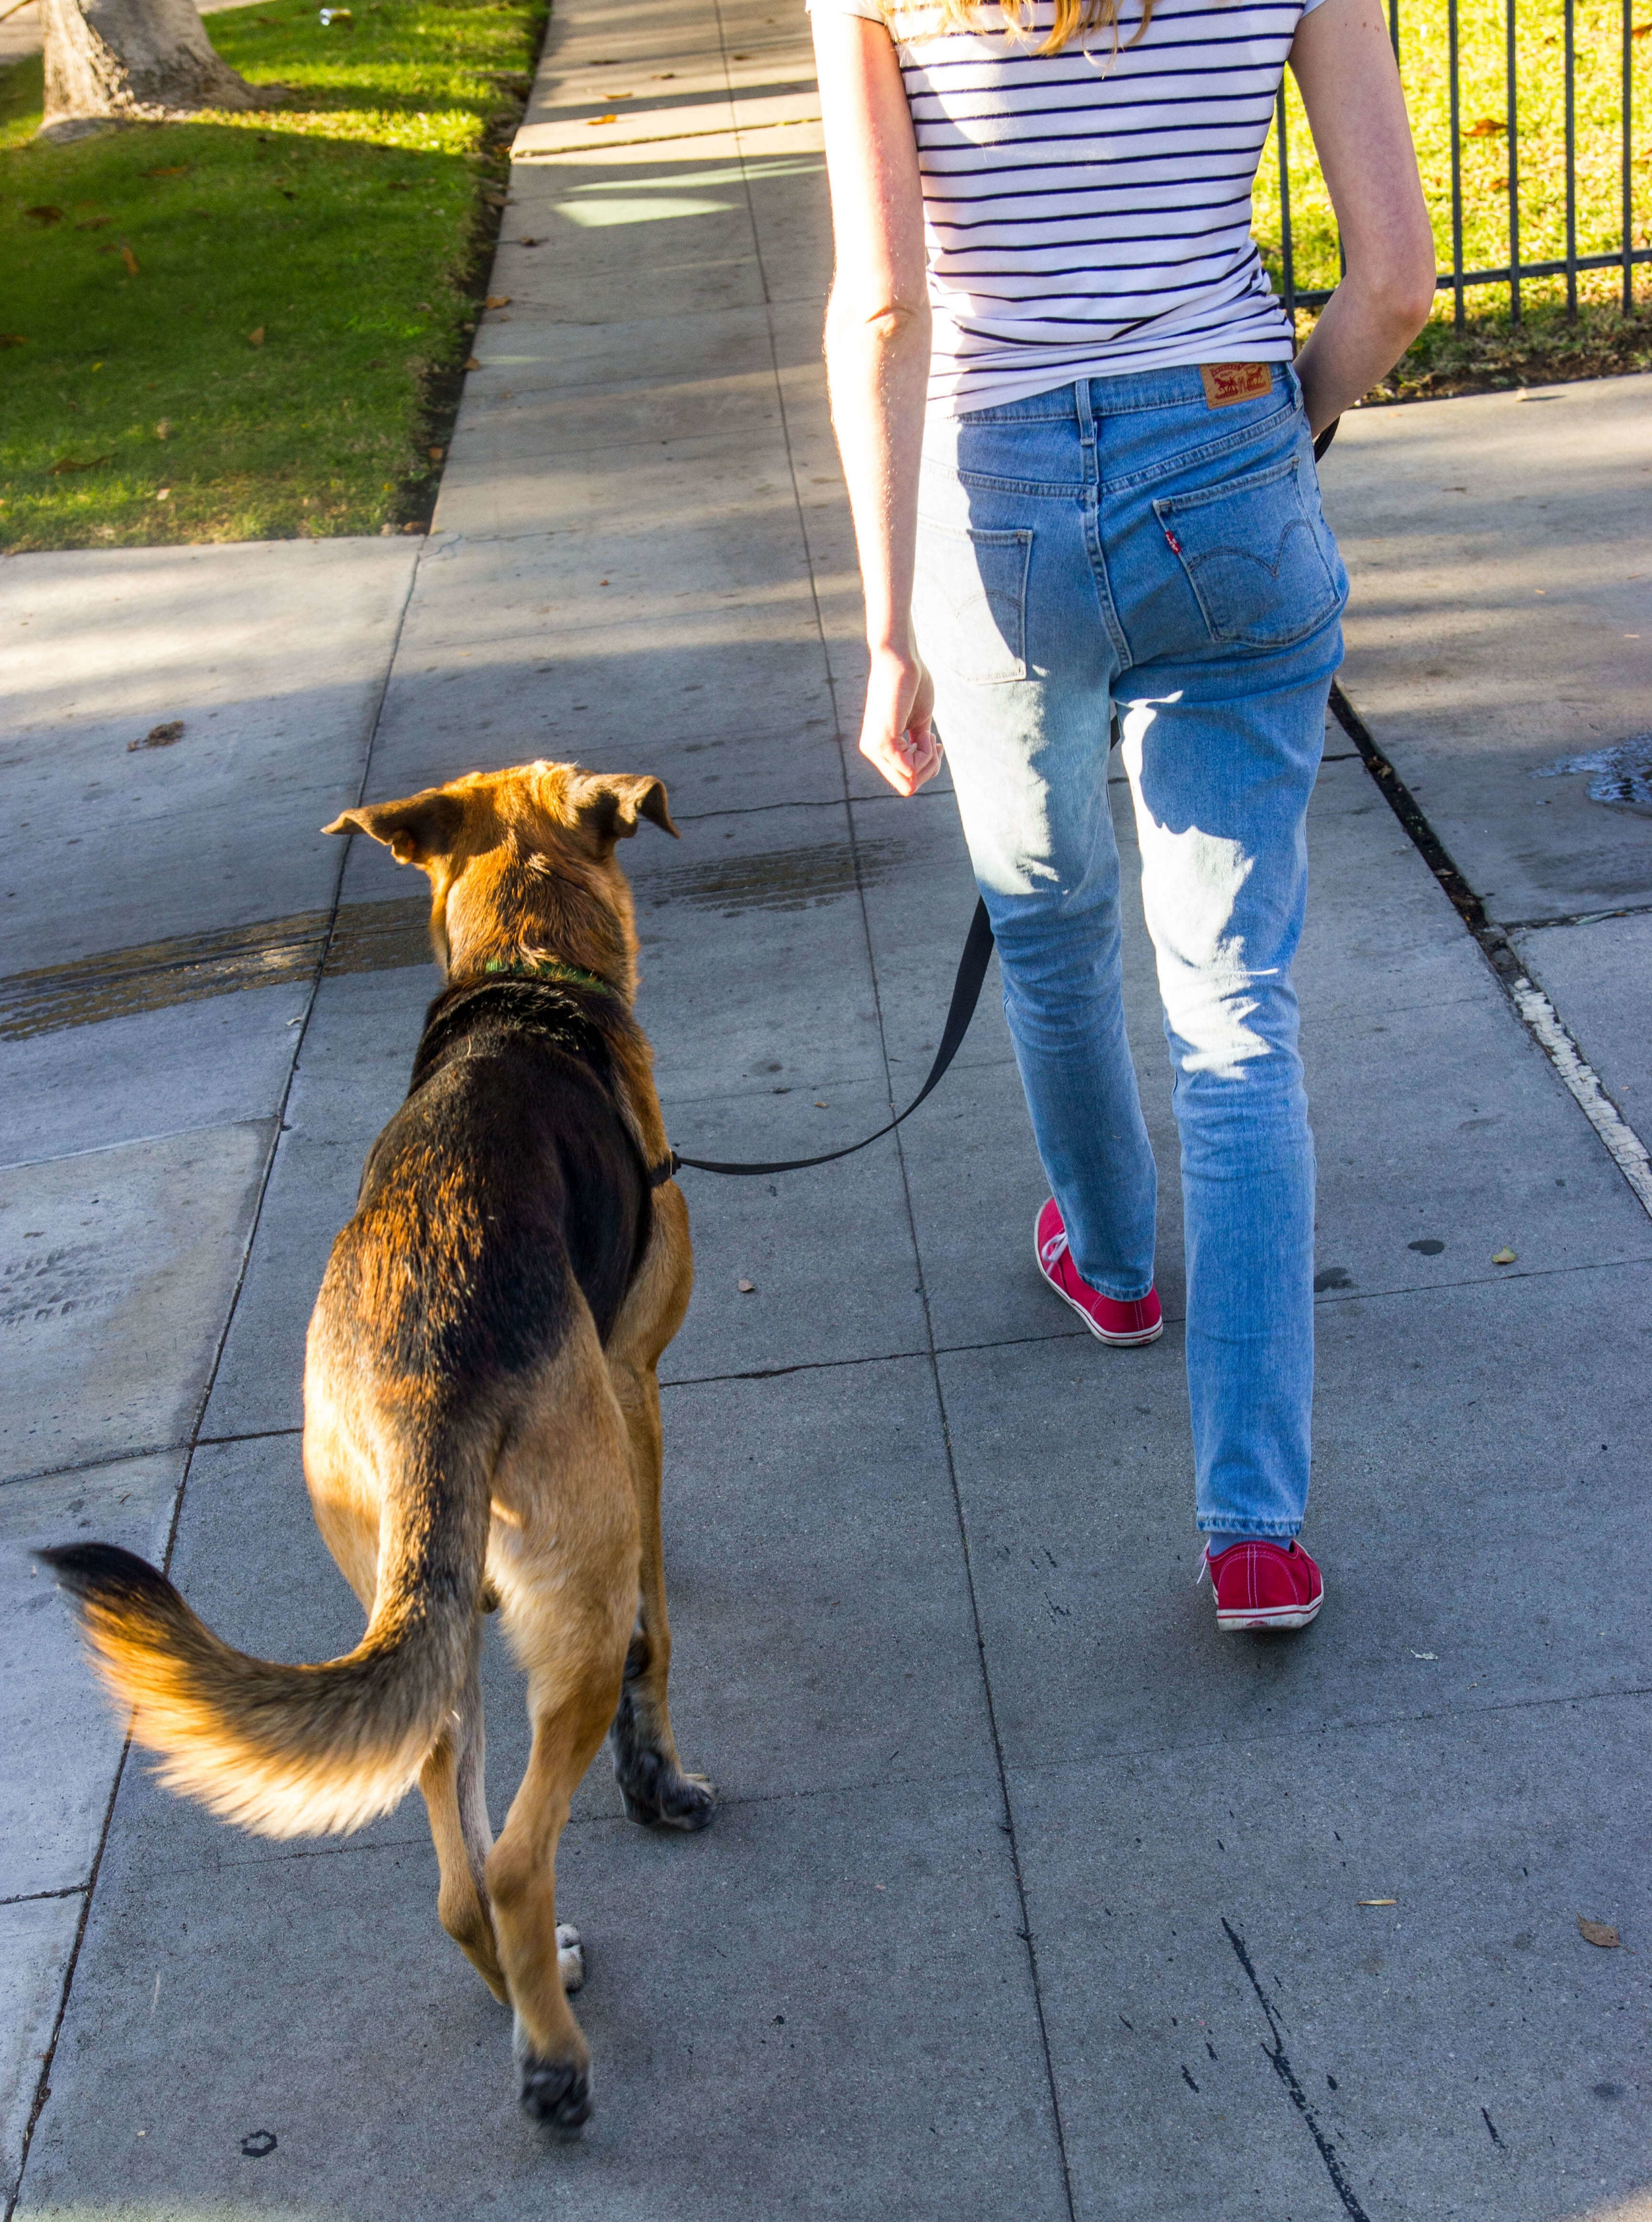 German Shepherd getting trained by dog trainers at Dog Savvy Los Angeles in Atwater Village.